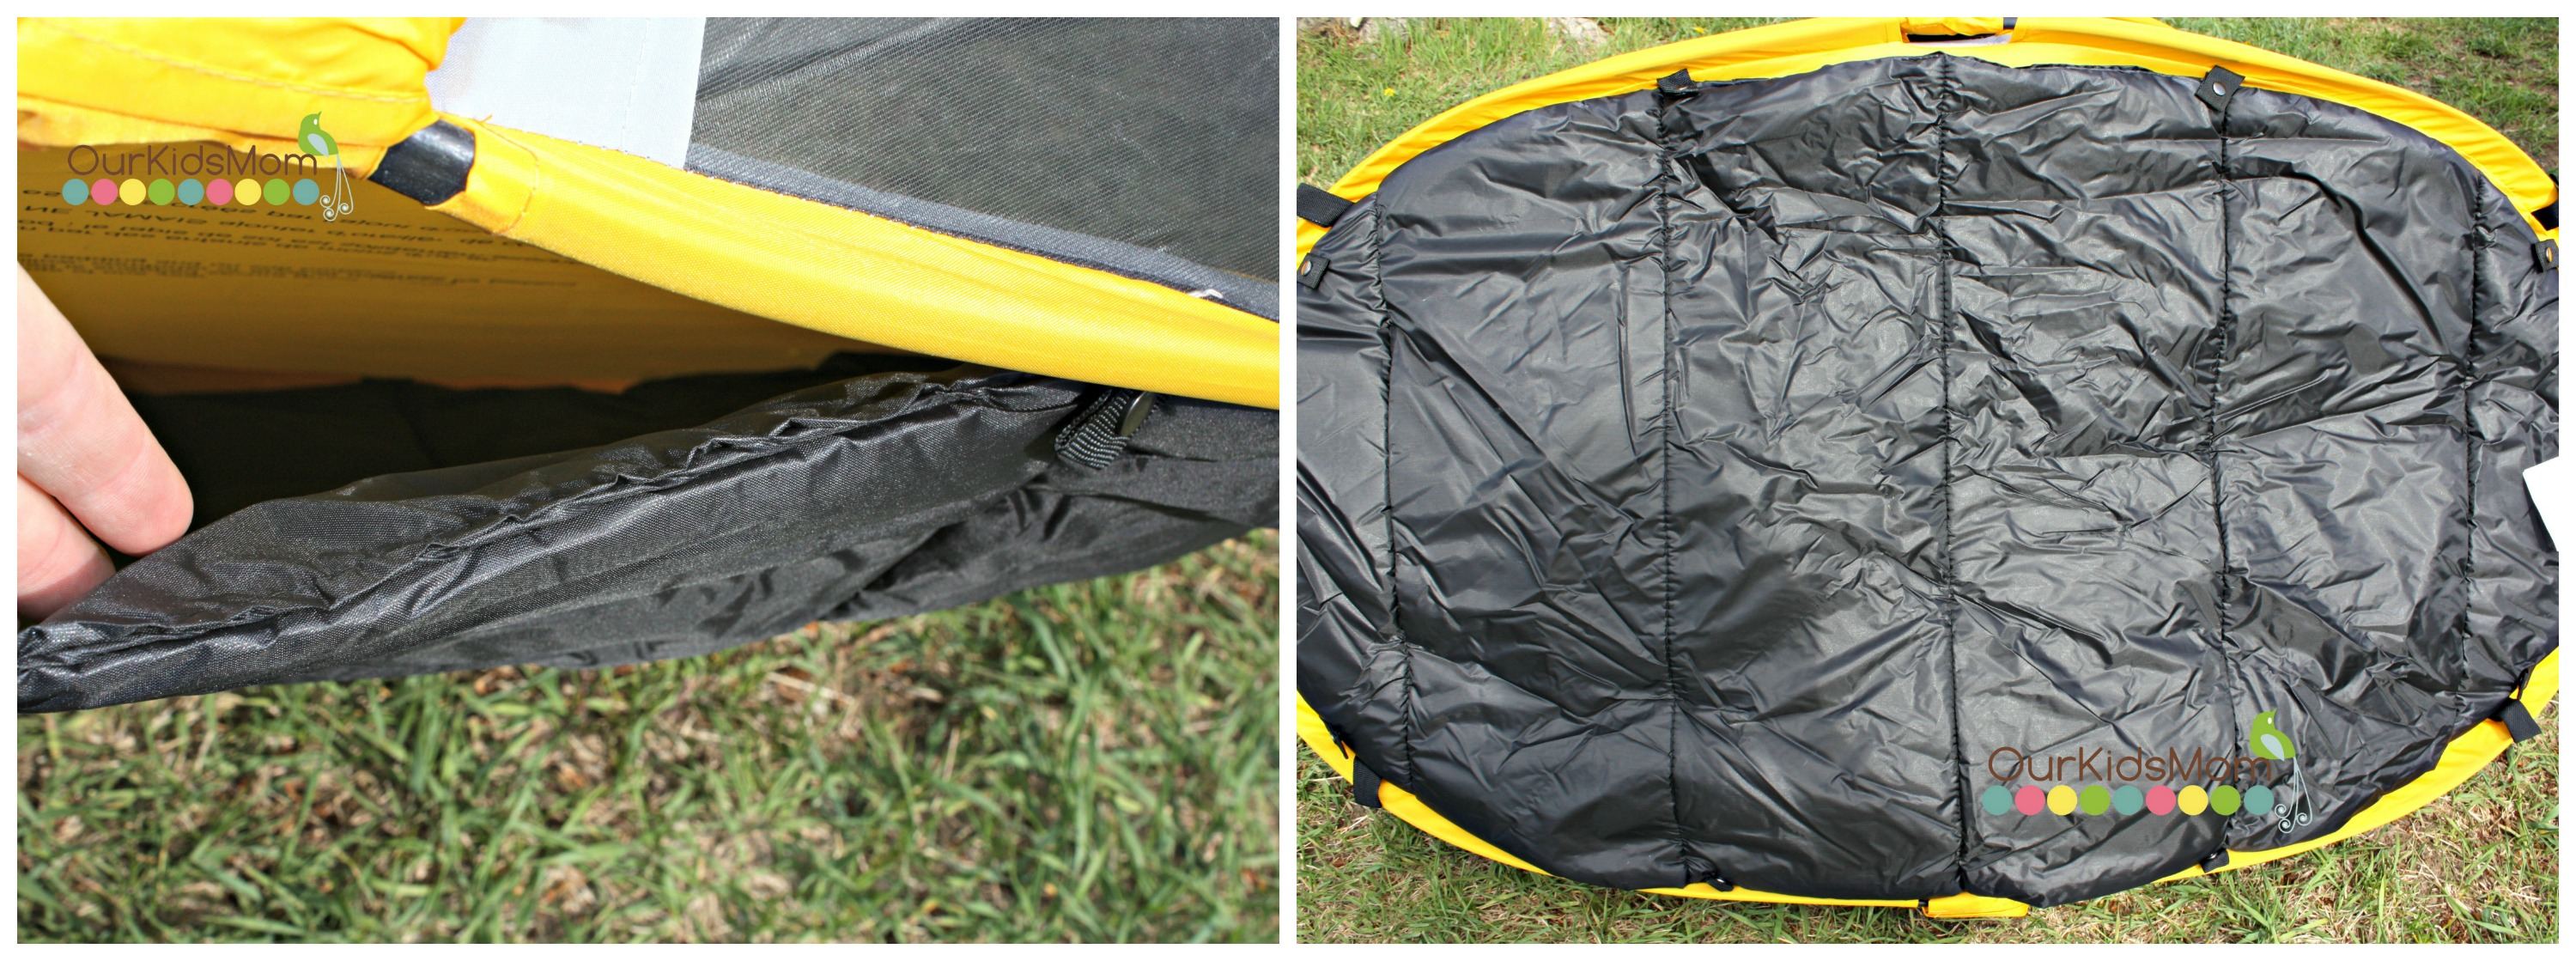 The tent comes with a Micro-Lite sleeping pad that attaches to the underside of the floor with snaps. The pad is super easy to remove for cleaning and then ... & Kidco PeaPod Review